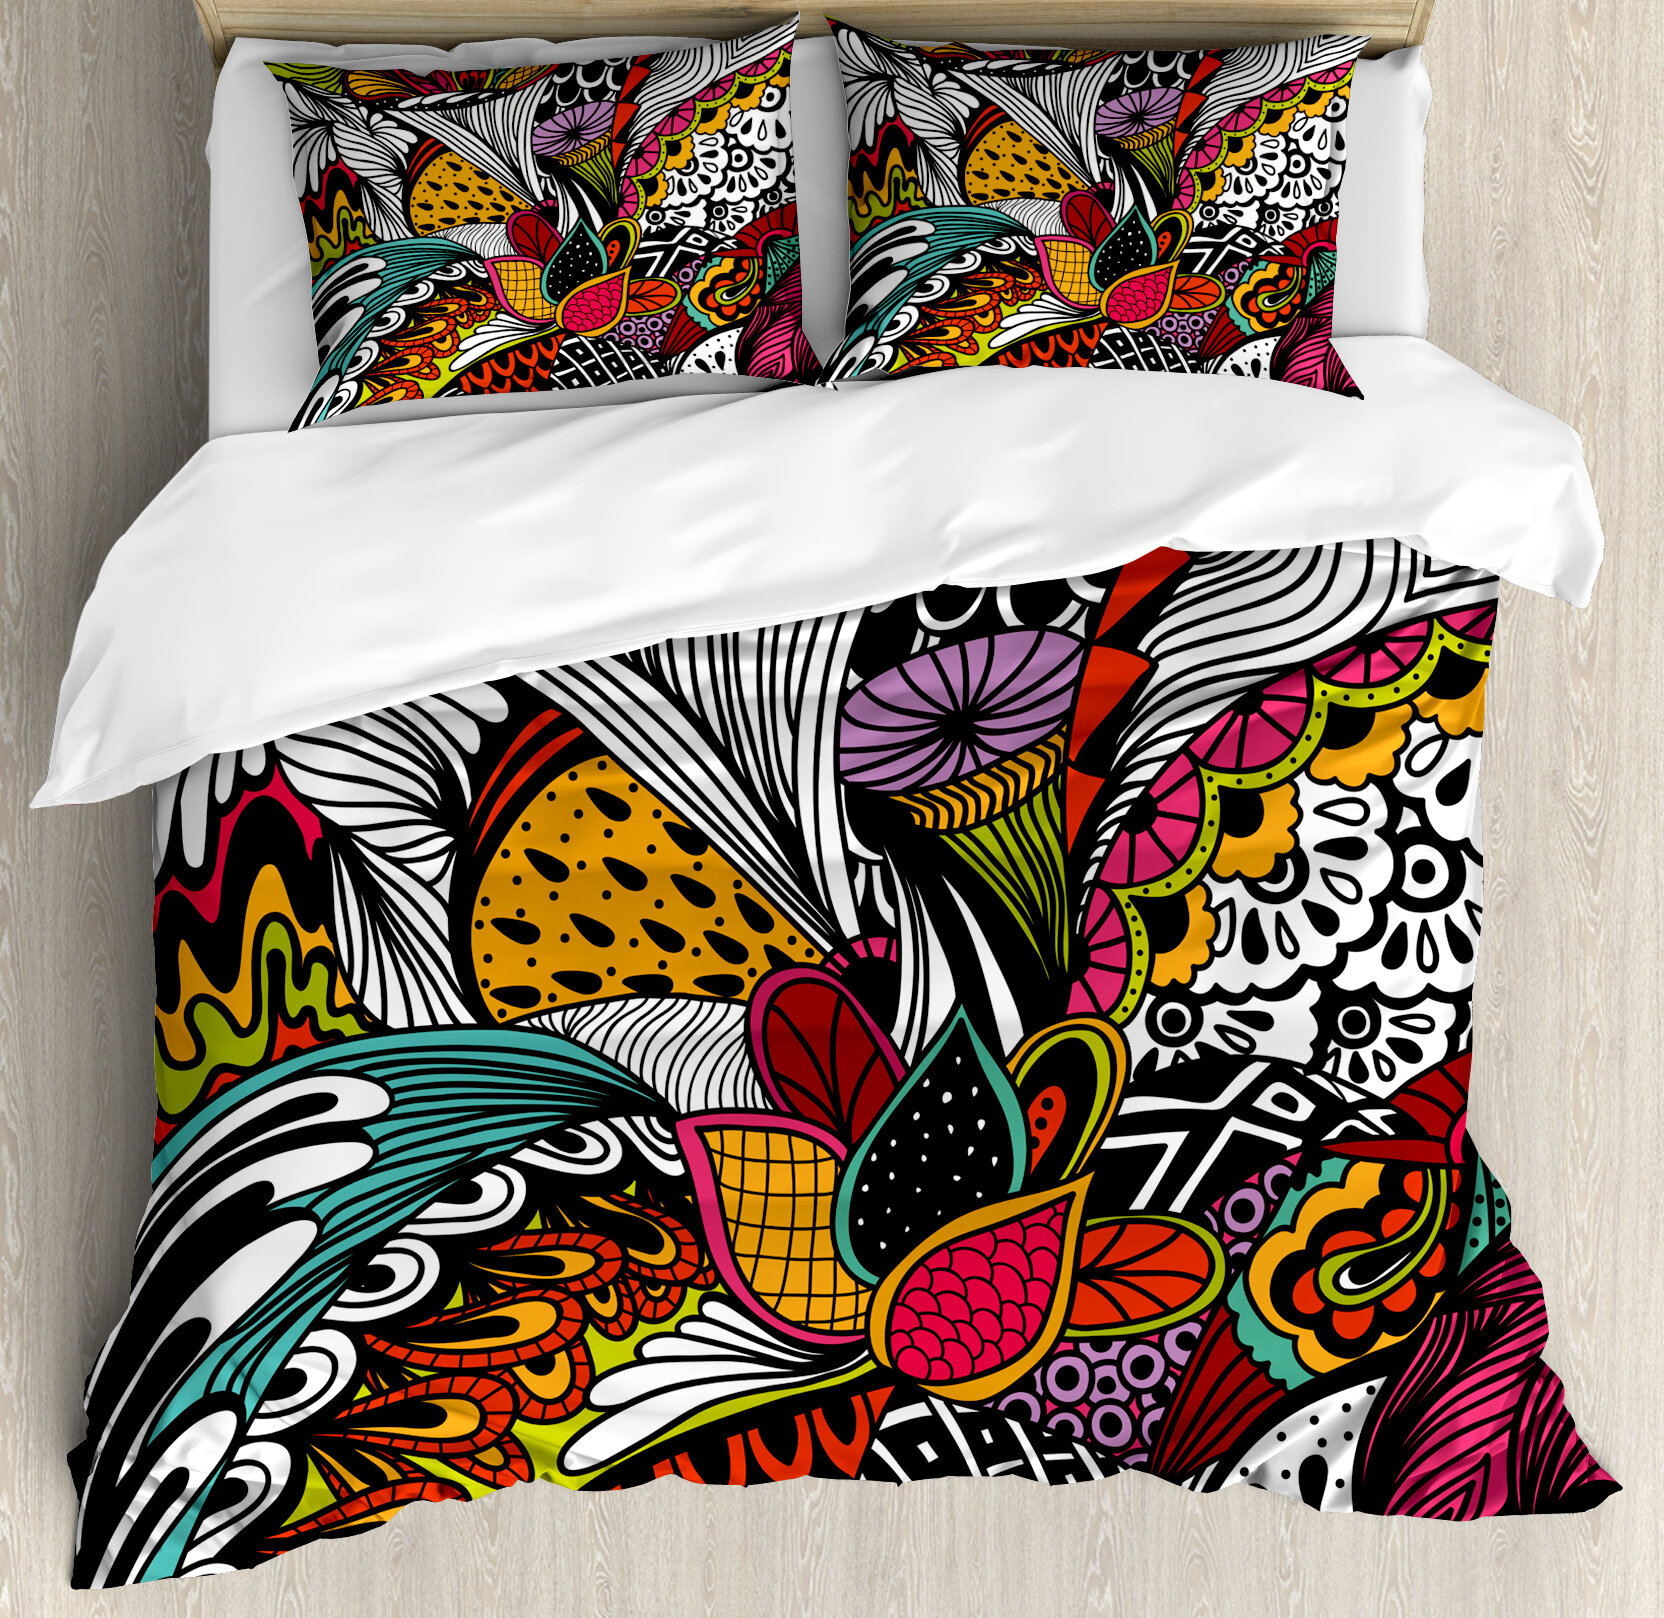 Garden Doodle Abstract Exotic Flowers Colourful Ornate Leaves Petals Festive Tropical Duvet Cover Set